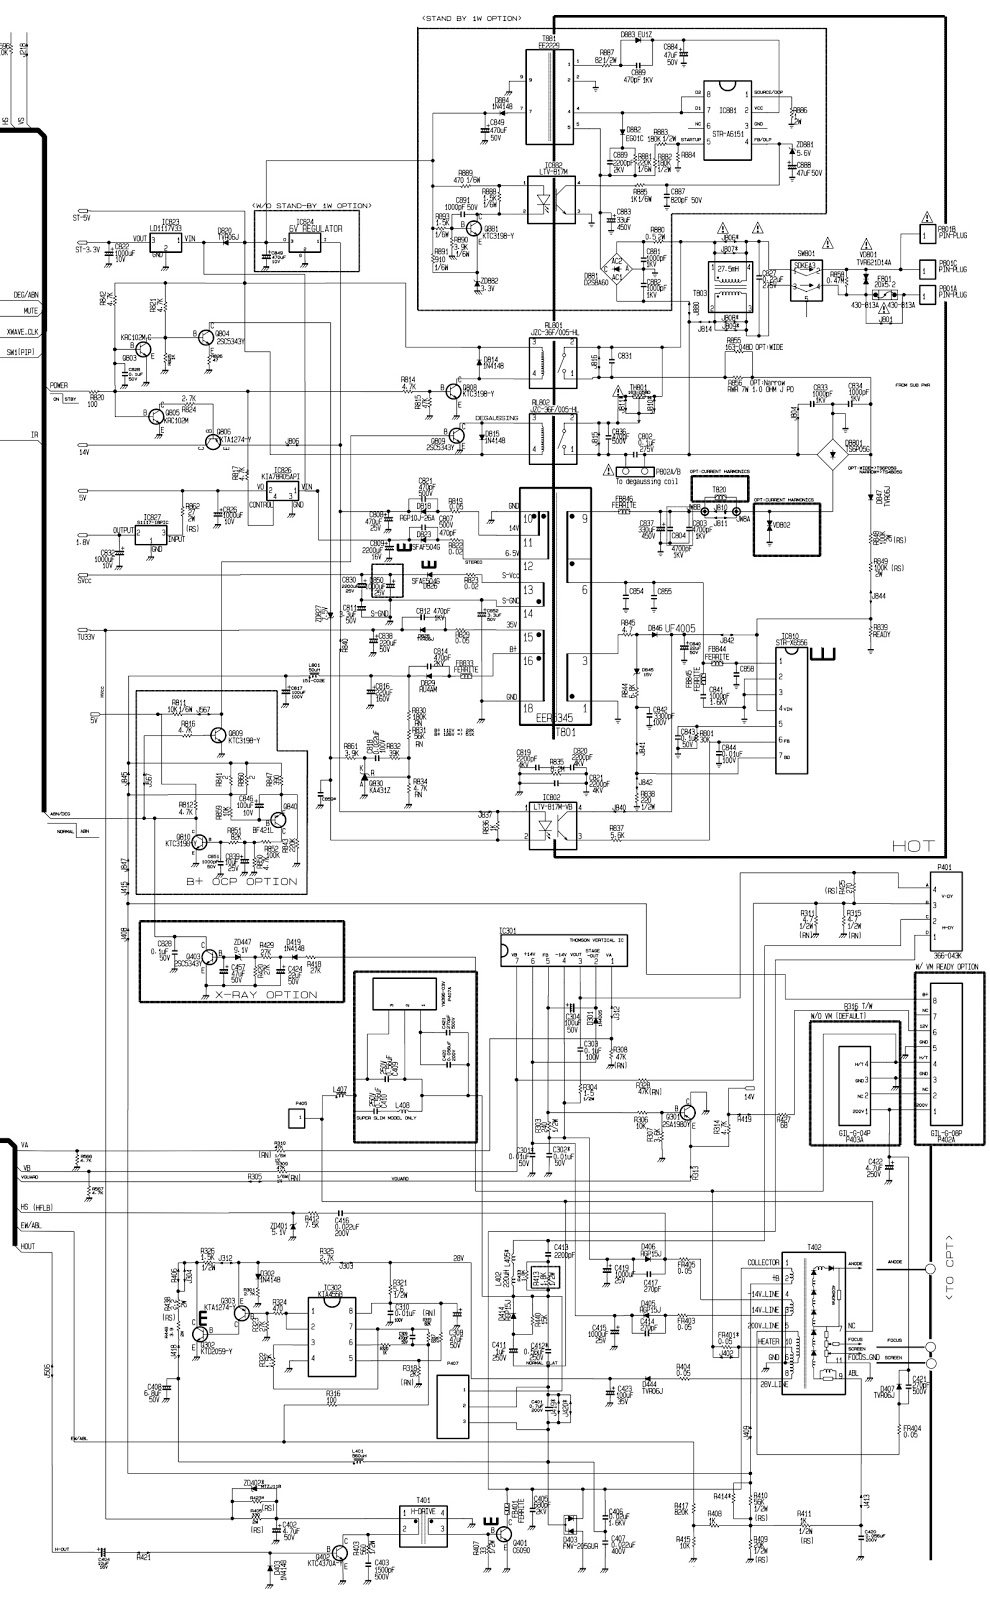 small resolution of circuit diagram click on the schematic to magnify